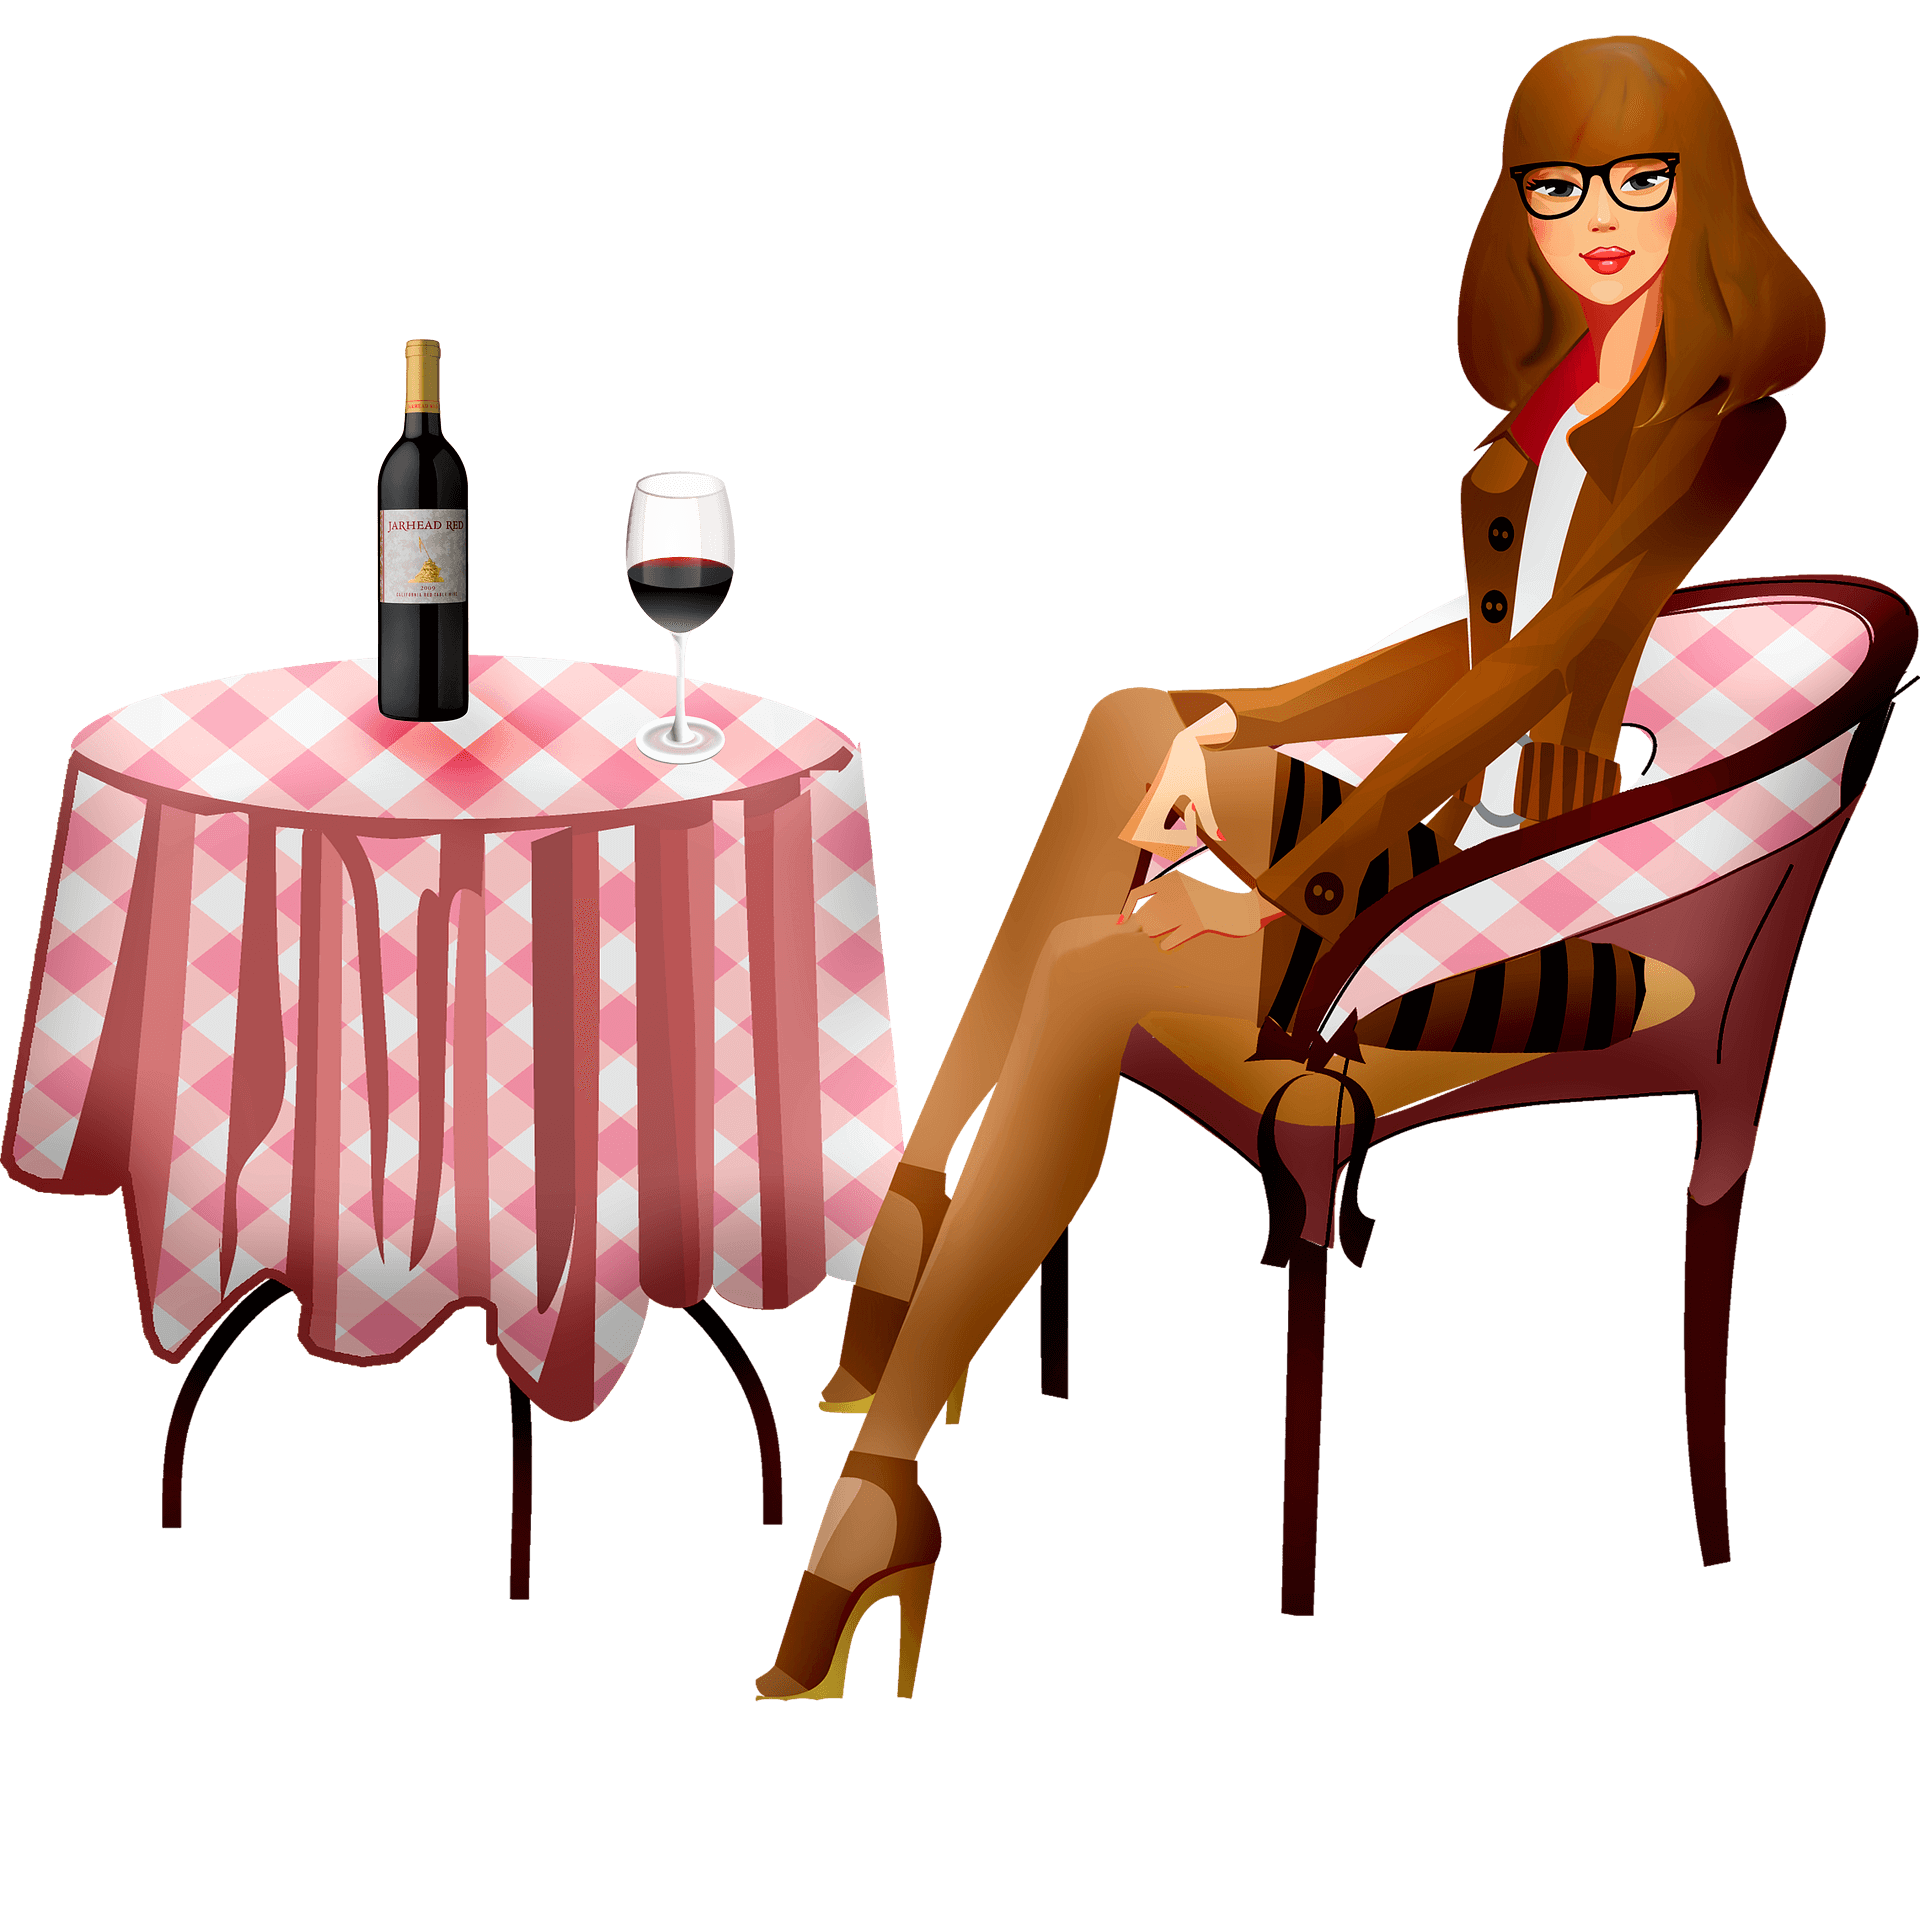 Infographic of a skinny lady enjoying wine at a small round table.